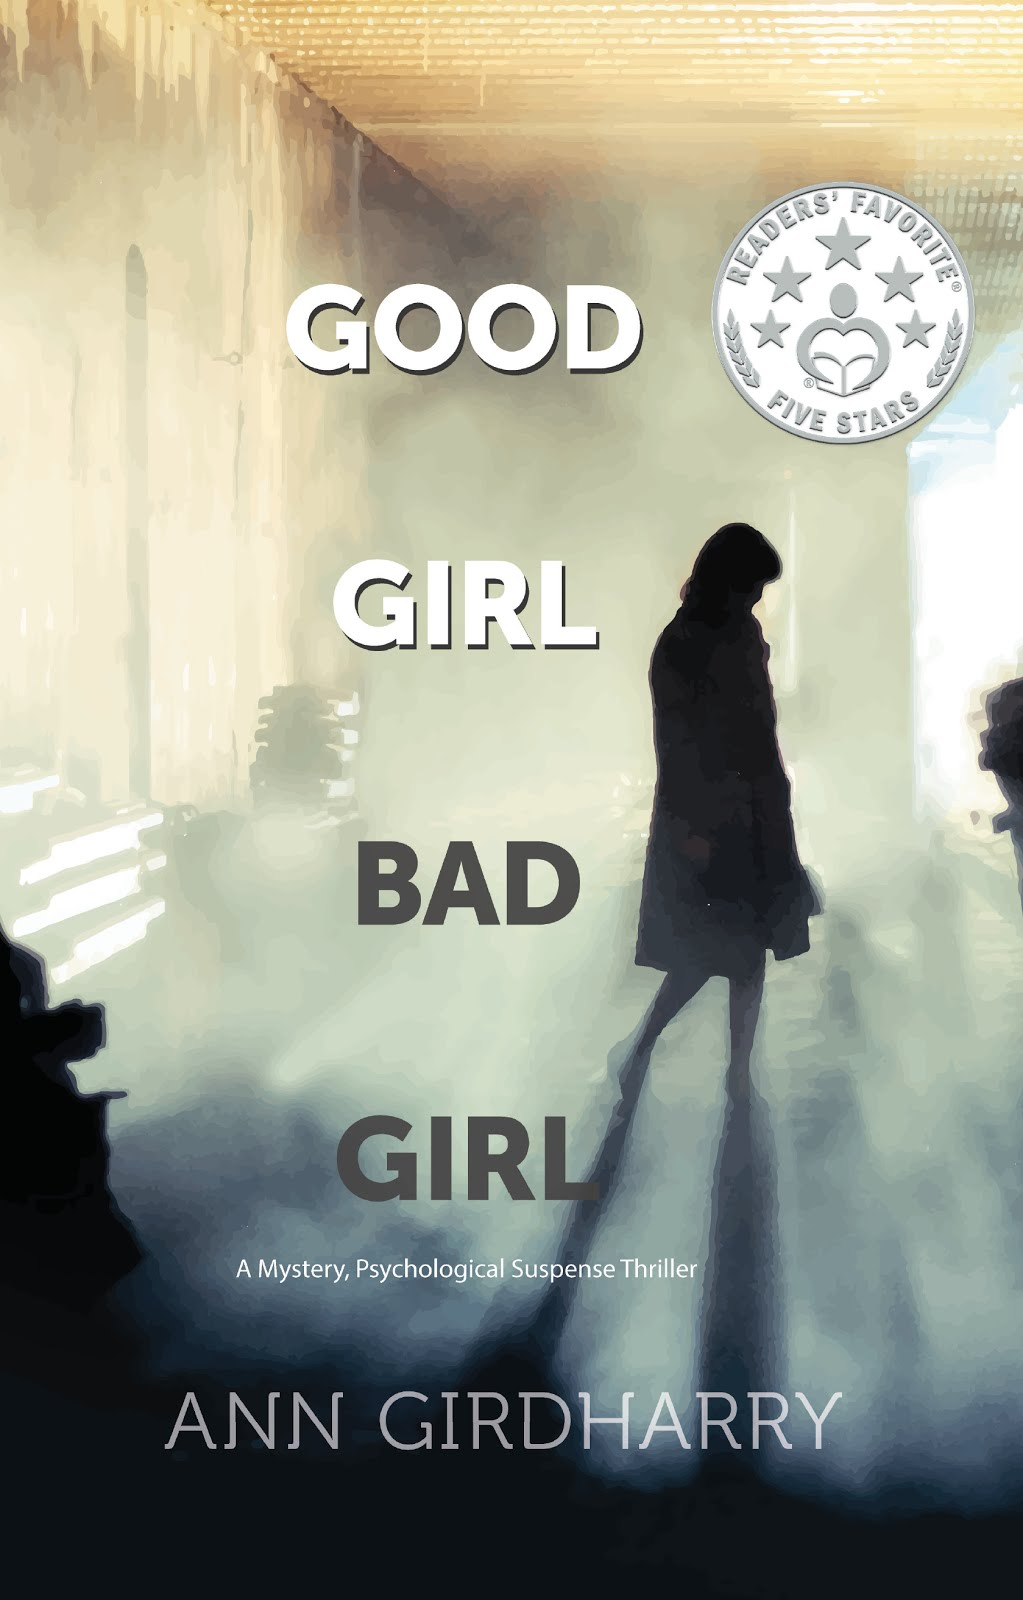 Good Girl Bad Girl: A Mystery, Psychological Suspense Thriller